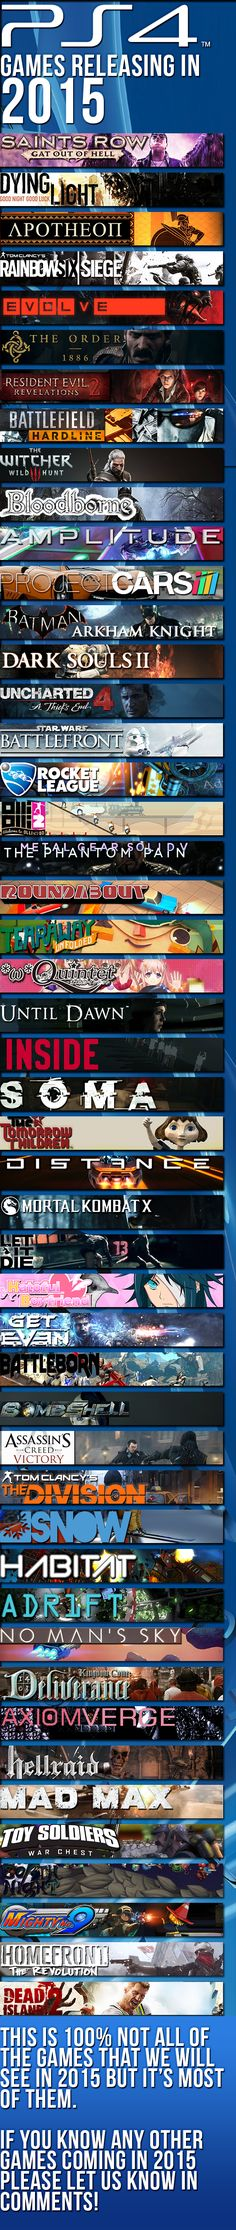 Most of the games coming in 2015 on PS4